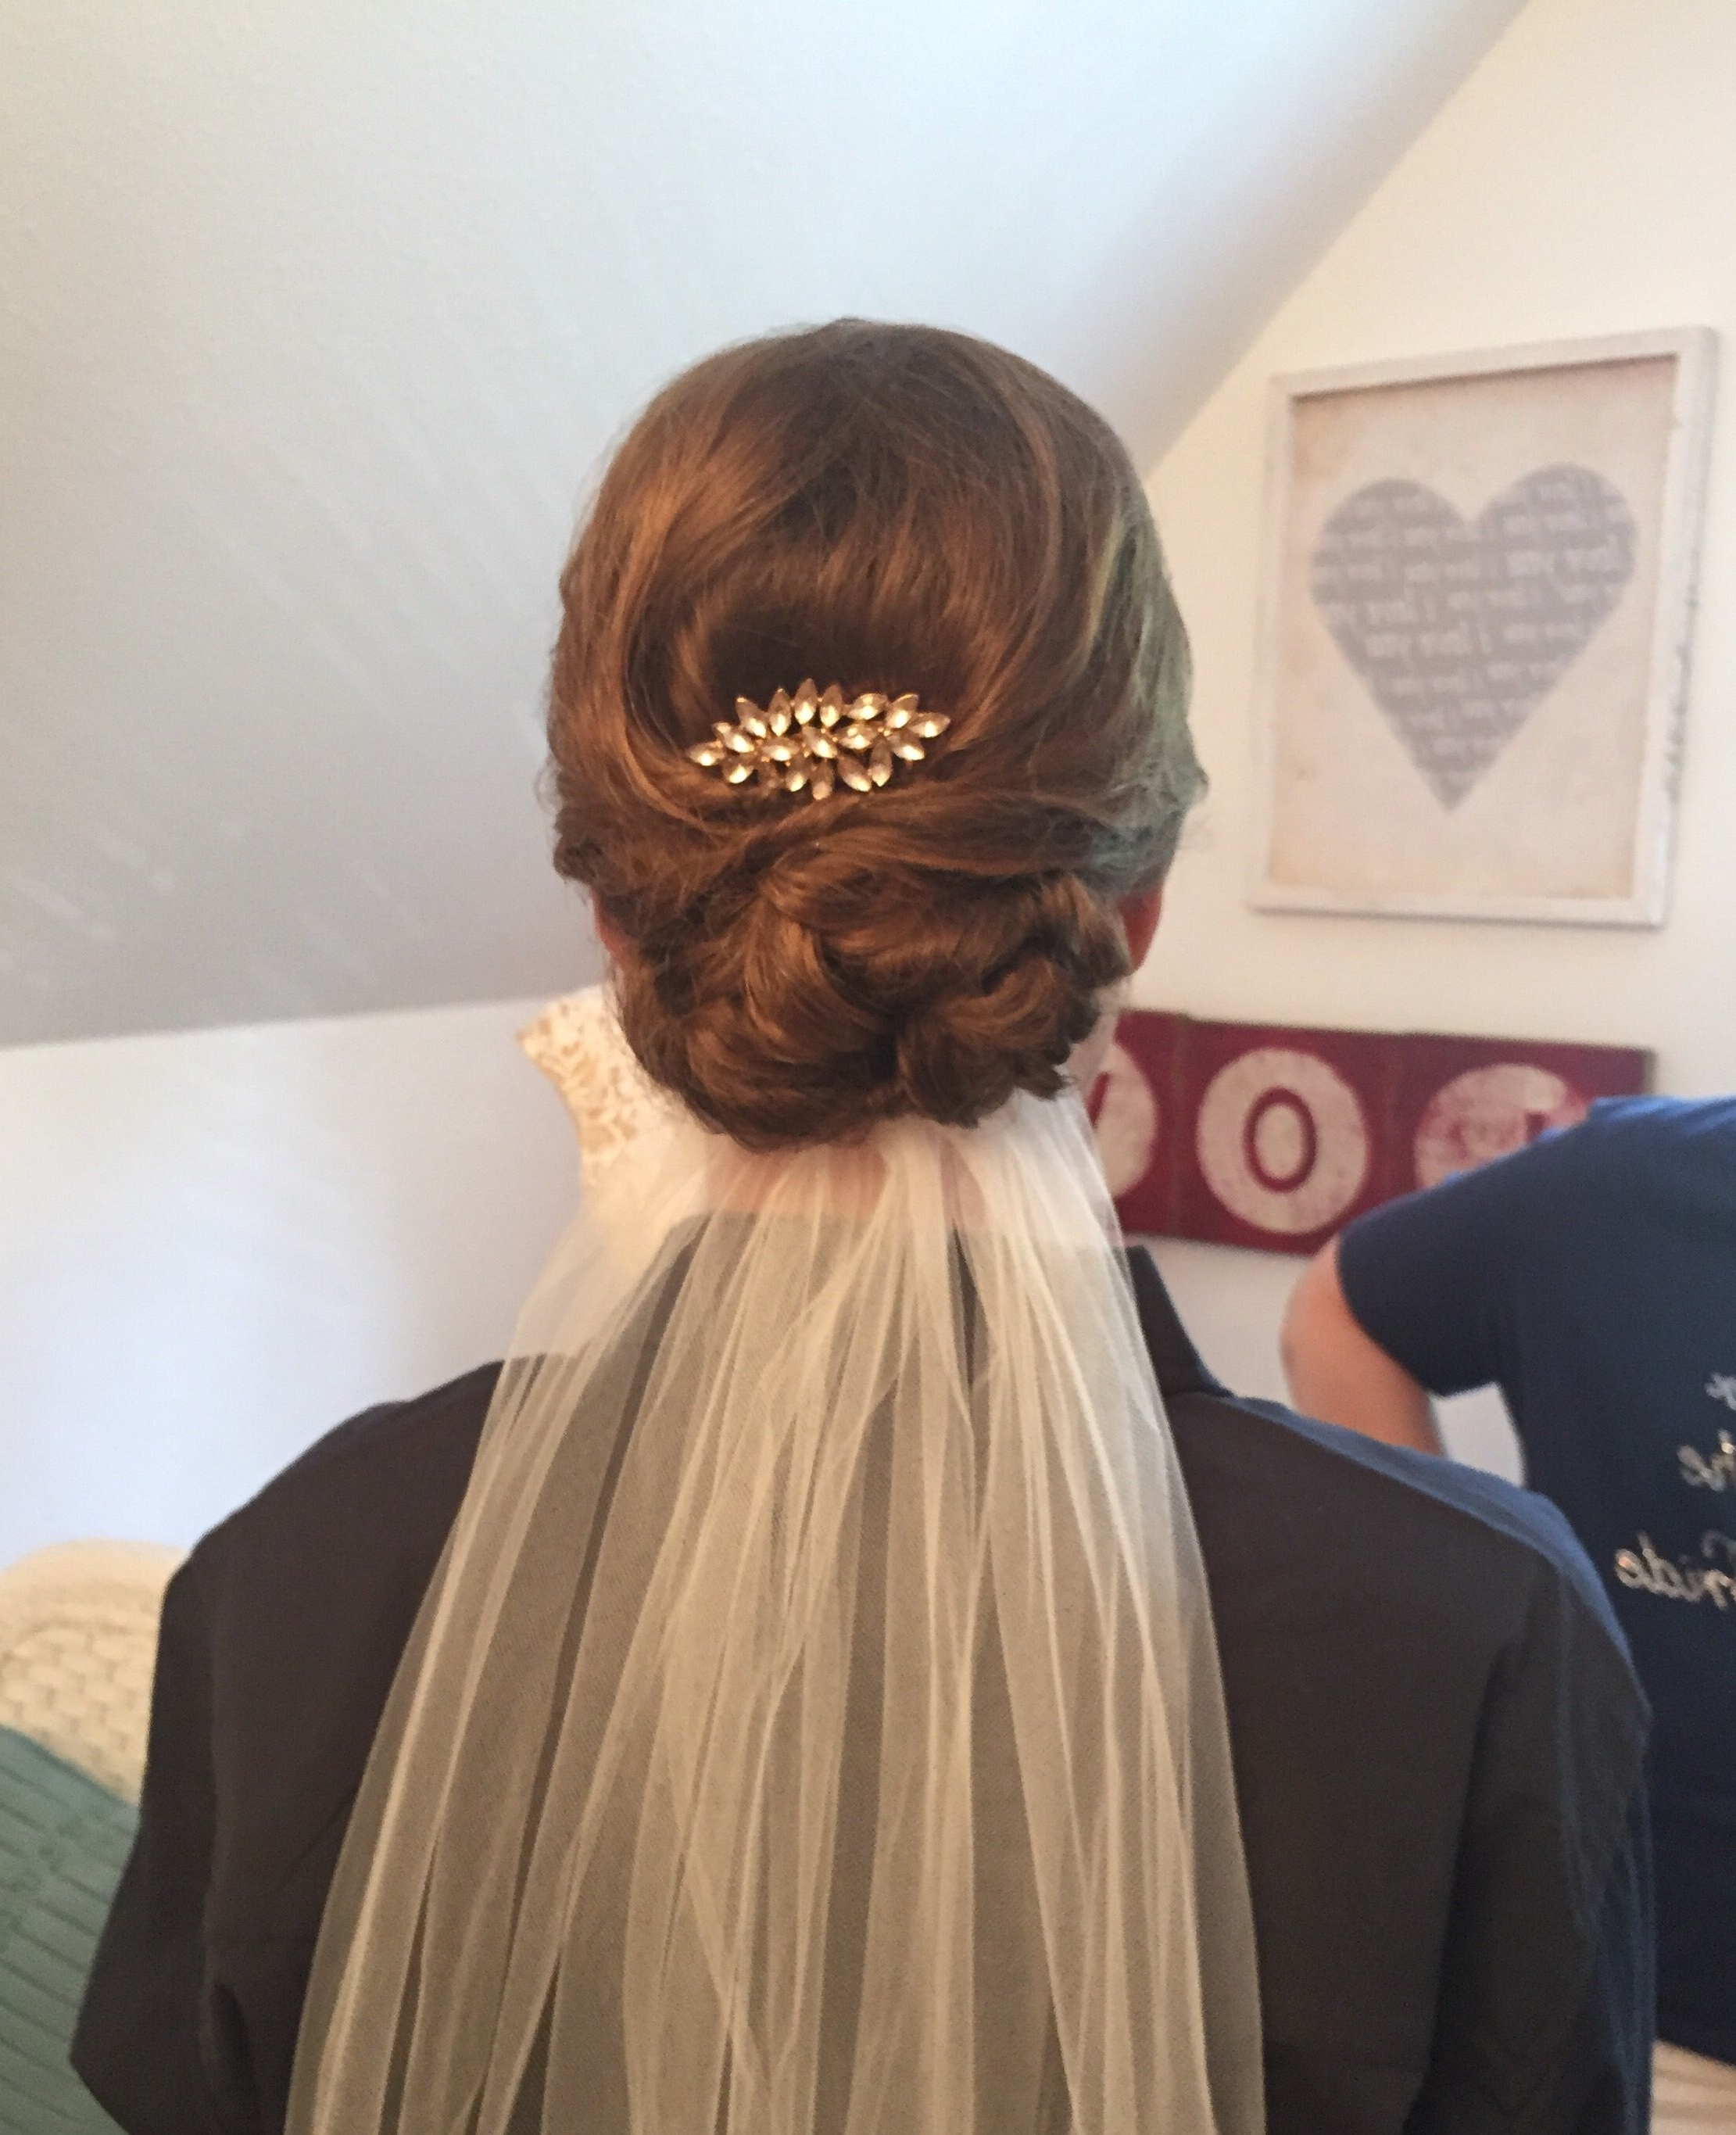 Bride Low Updo, Veil Underneath, Vintage Clip, Short, Thin Hair Throughout Trendy Wedding Hairstyles With Veil Underneath (View 6 of 15)